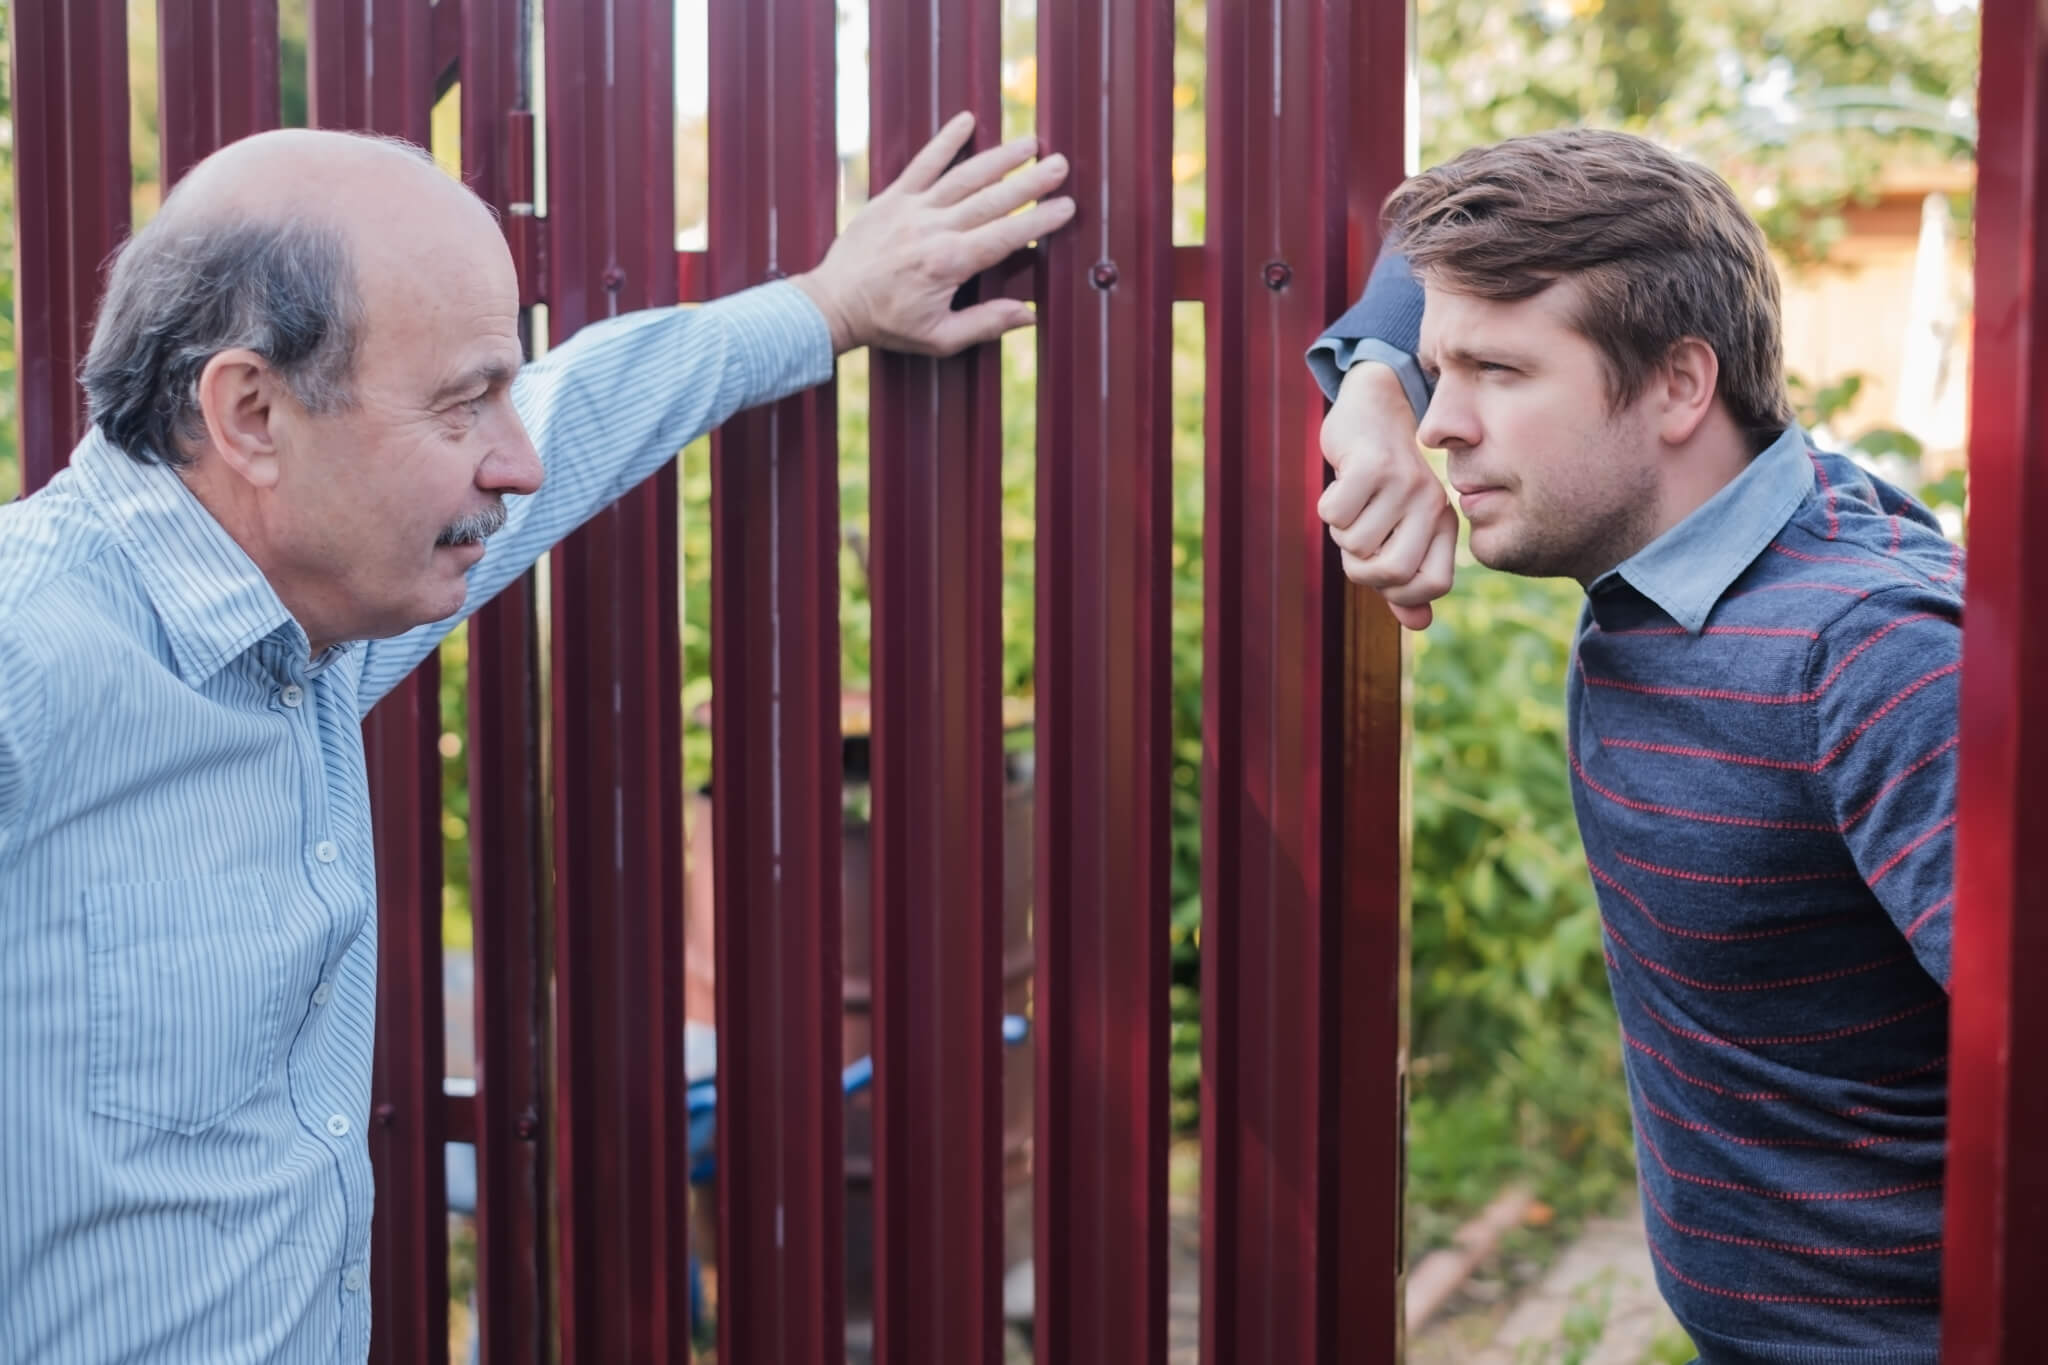 two neighbors talking through fence gate